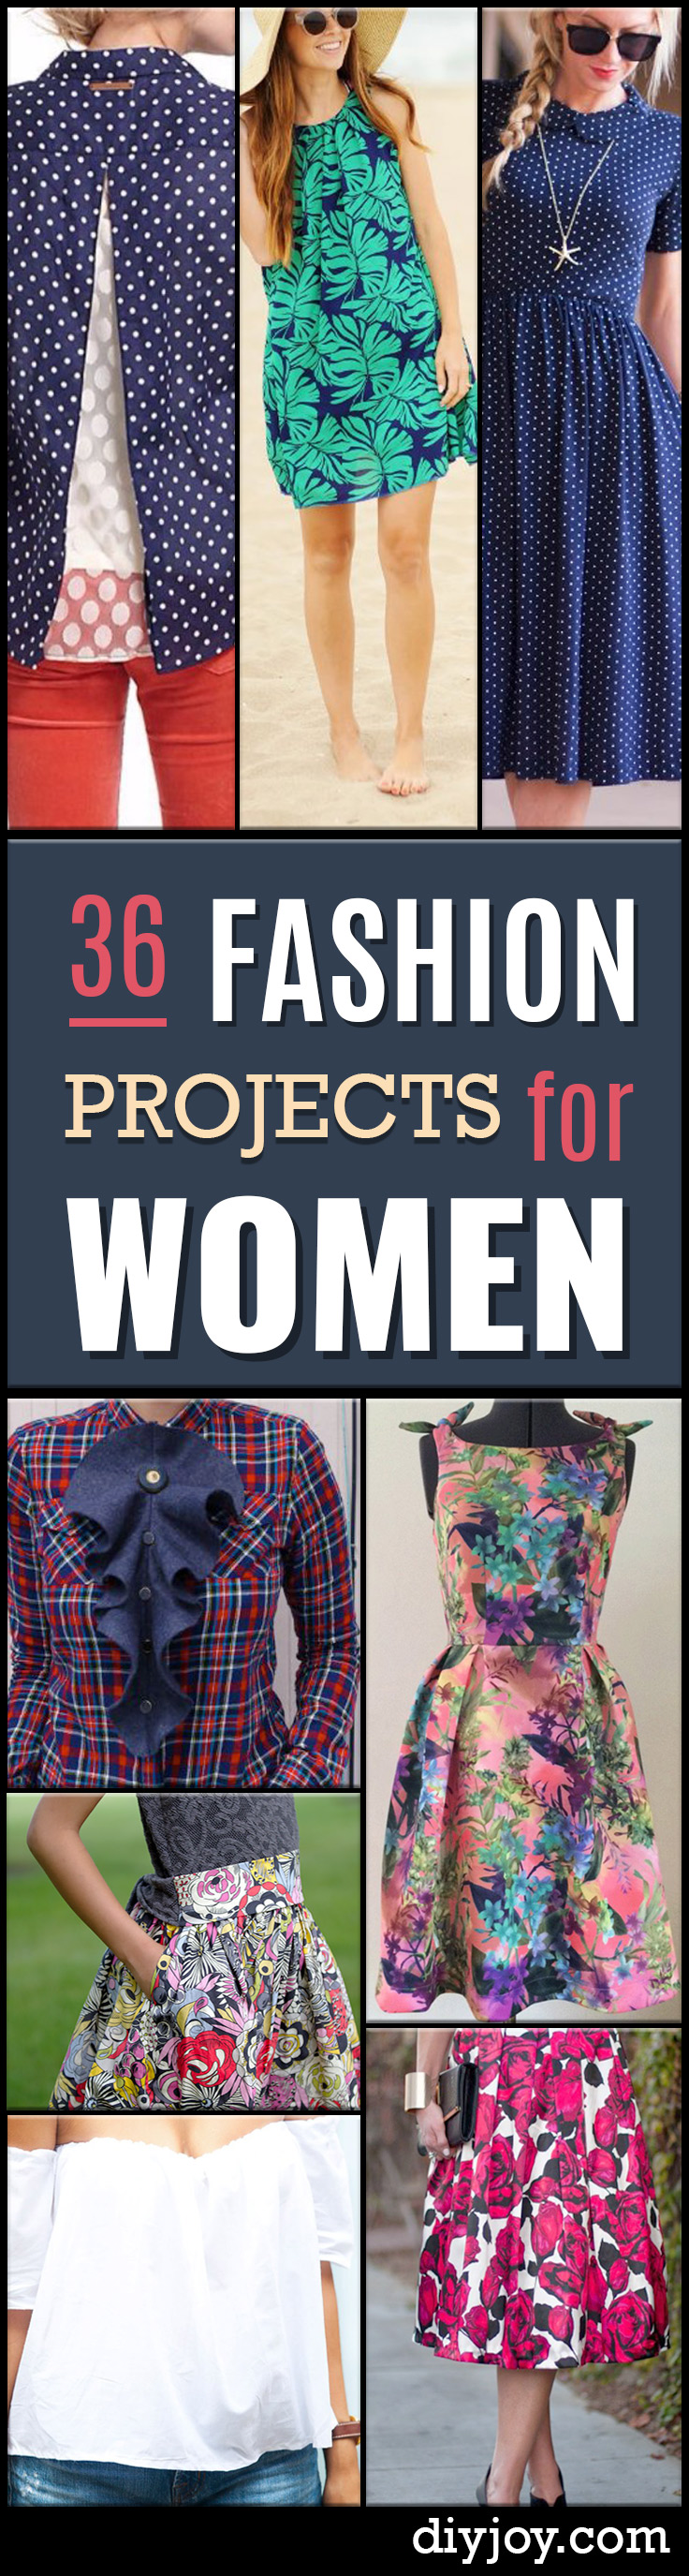 DIY Sewing Projects for Women - free patterns for clothing - How to Sew Dresses, Blouses, Pants, Tops and Fashion. Step by Step Tutorials and Instructions - homemade clothes ladies